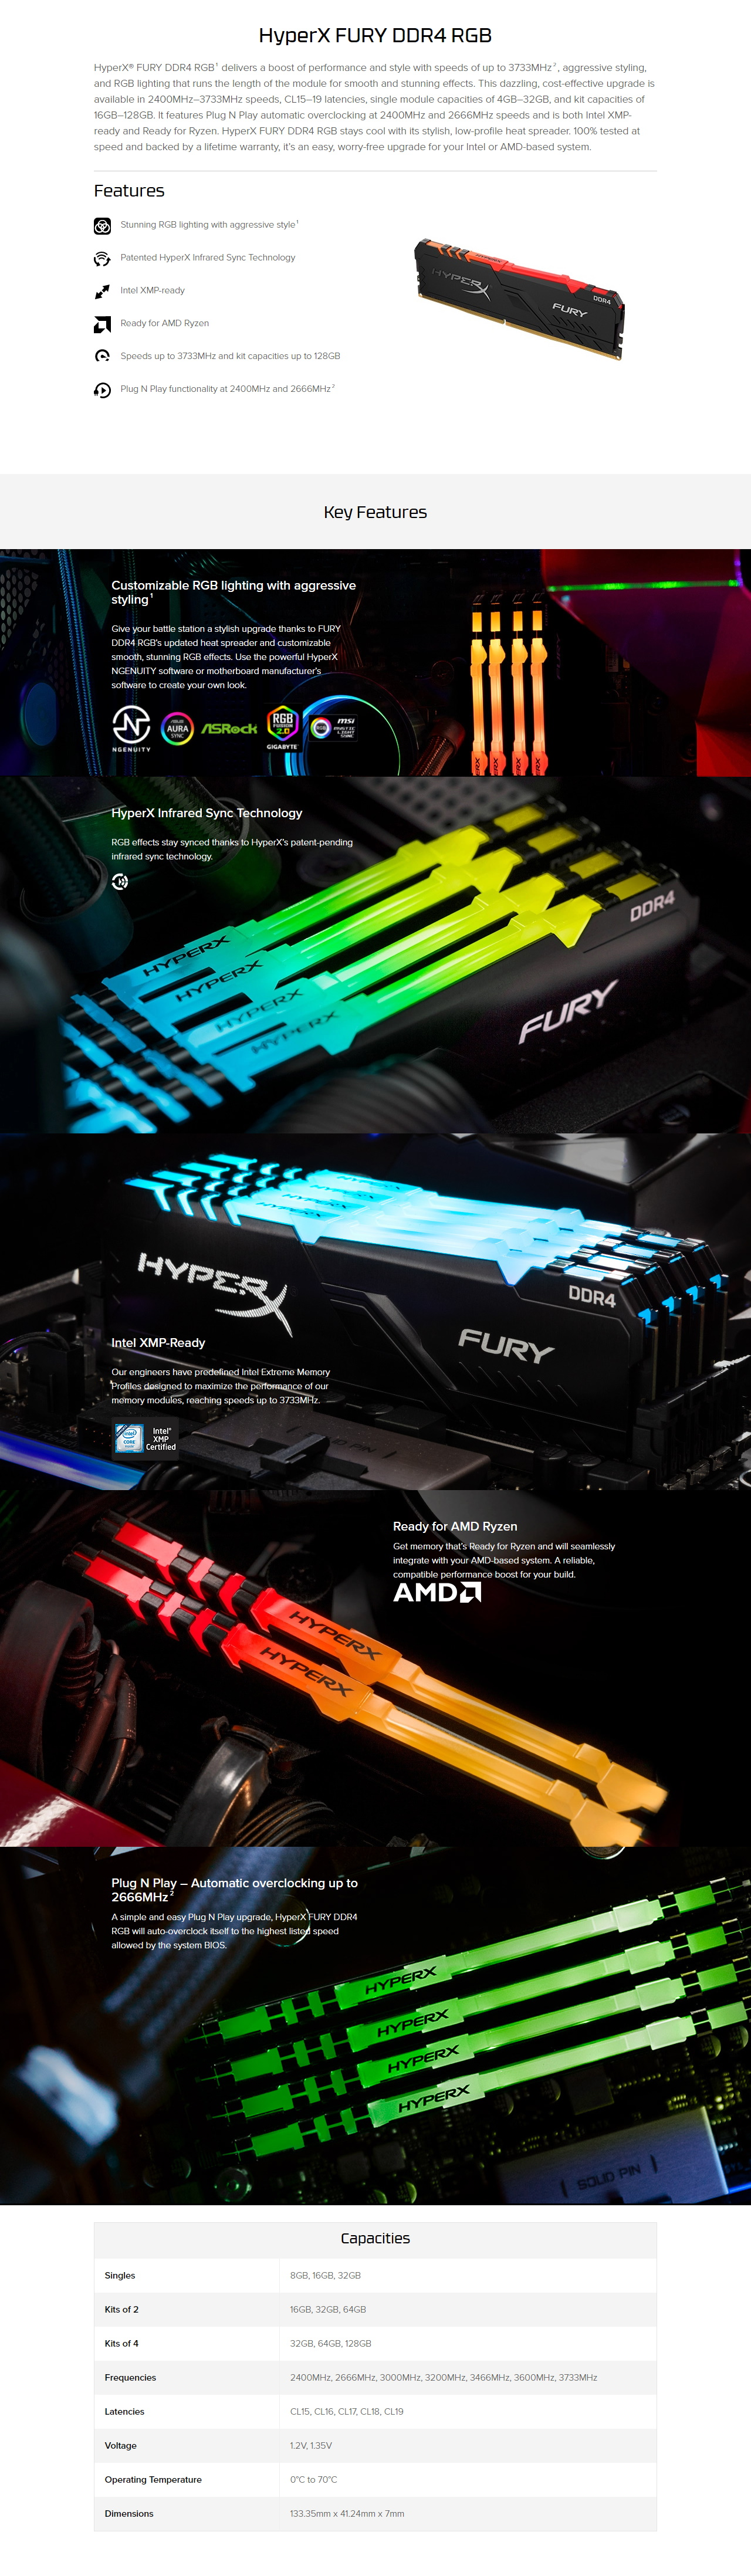 A large marketing image providing additional information about the product Kingston 16GB Kit (2x8GB) DDR4 HyperX Fury RGB C16 2666MHz - Additional alt info not provided